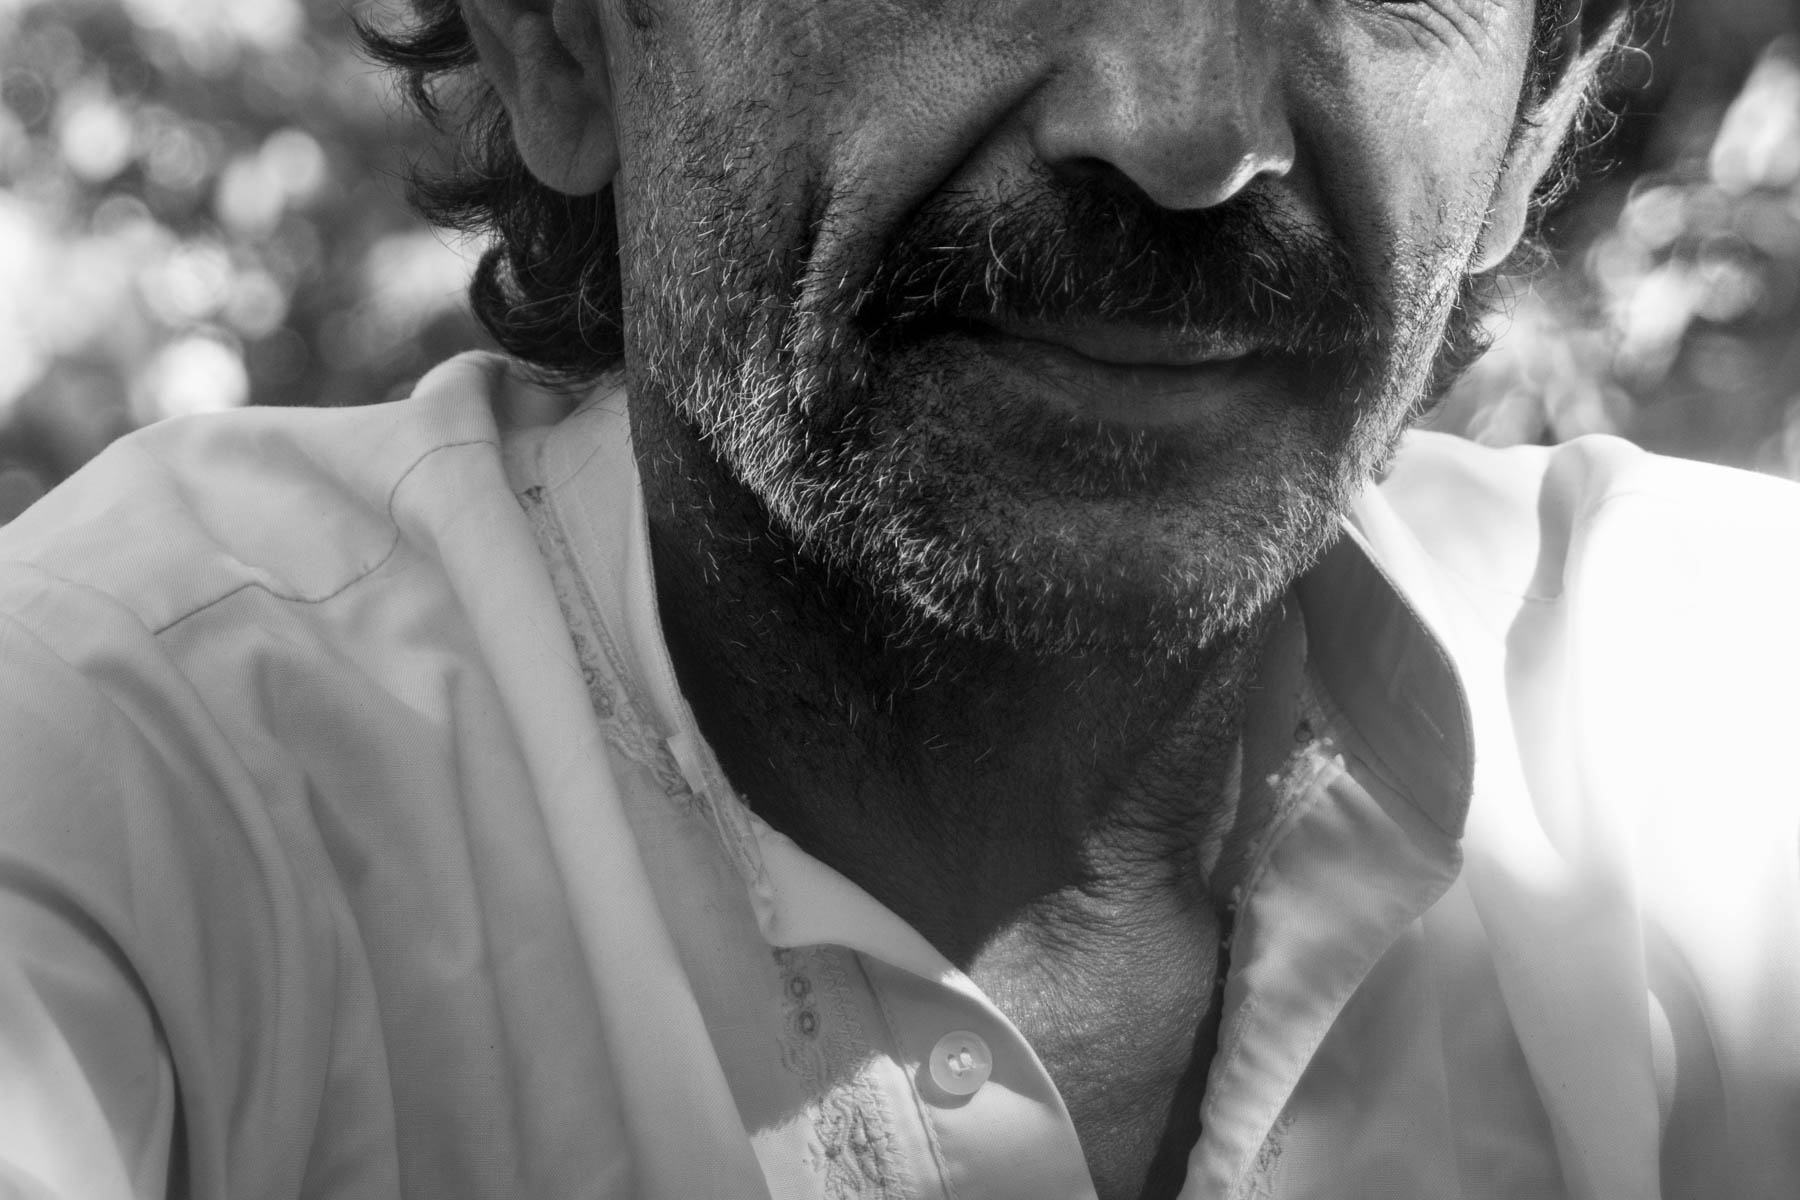 The shaman, whom we met while rolling with the stoners in Hunza, Pakistan